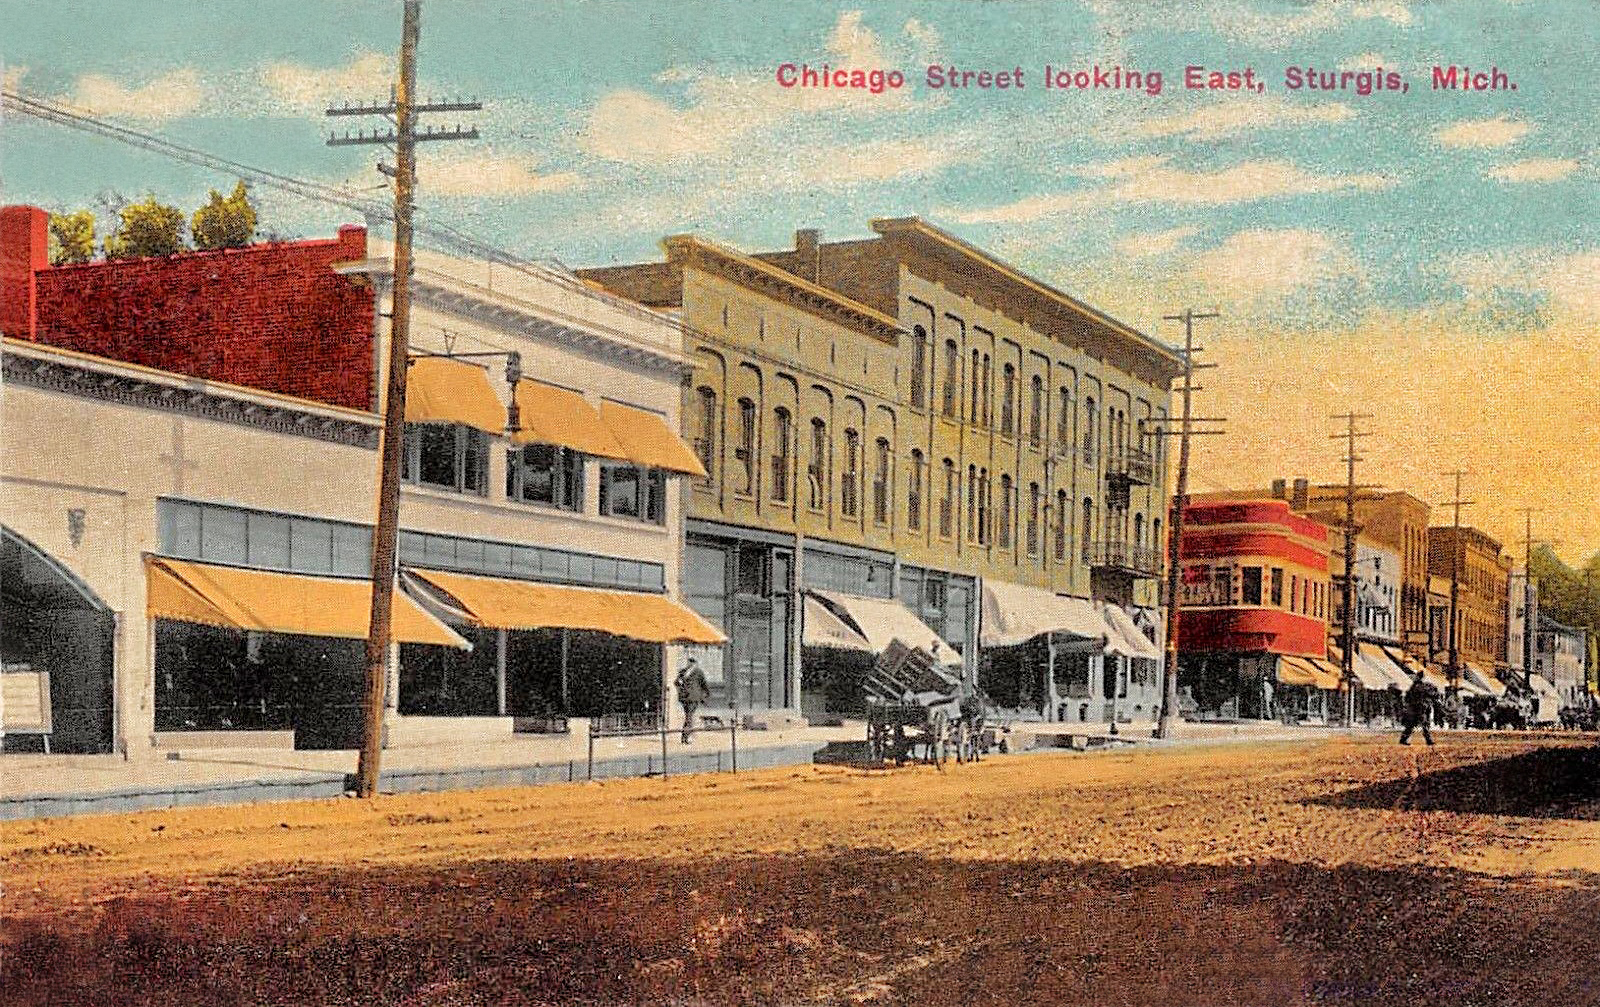 STURGIS MI 1907-13 Street Scene Along Chicago Street Looking East